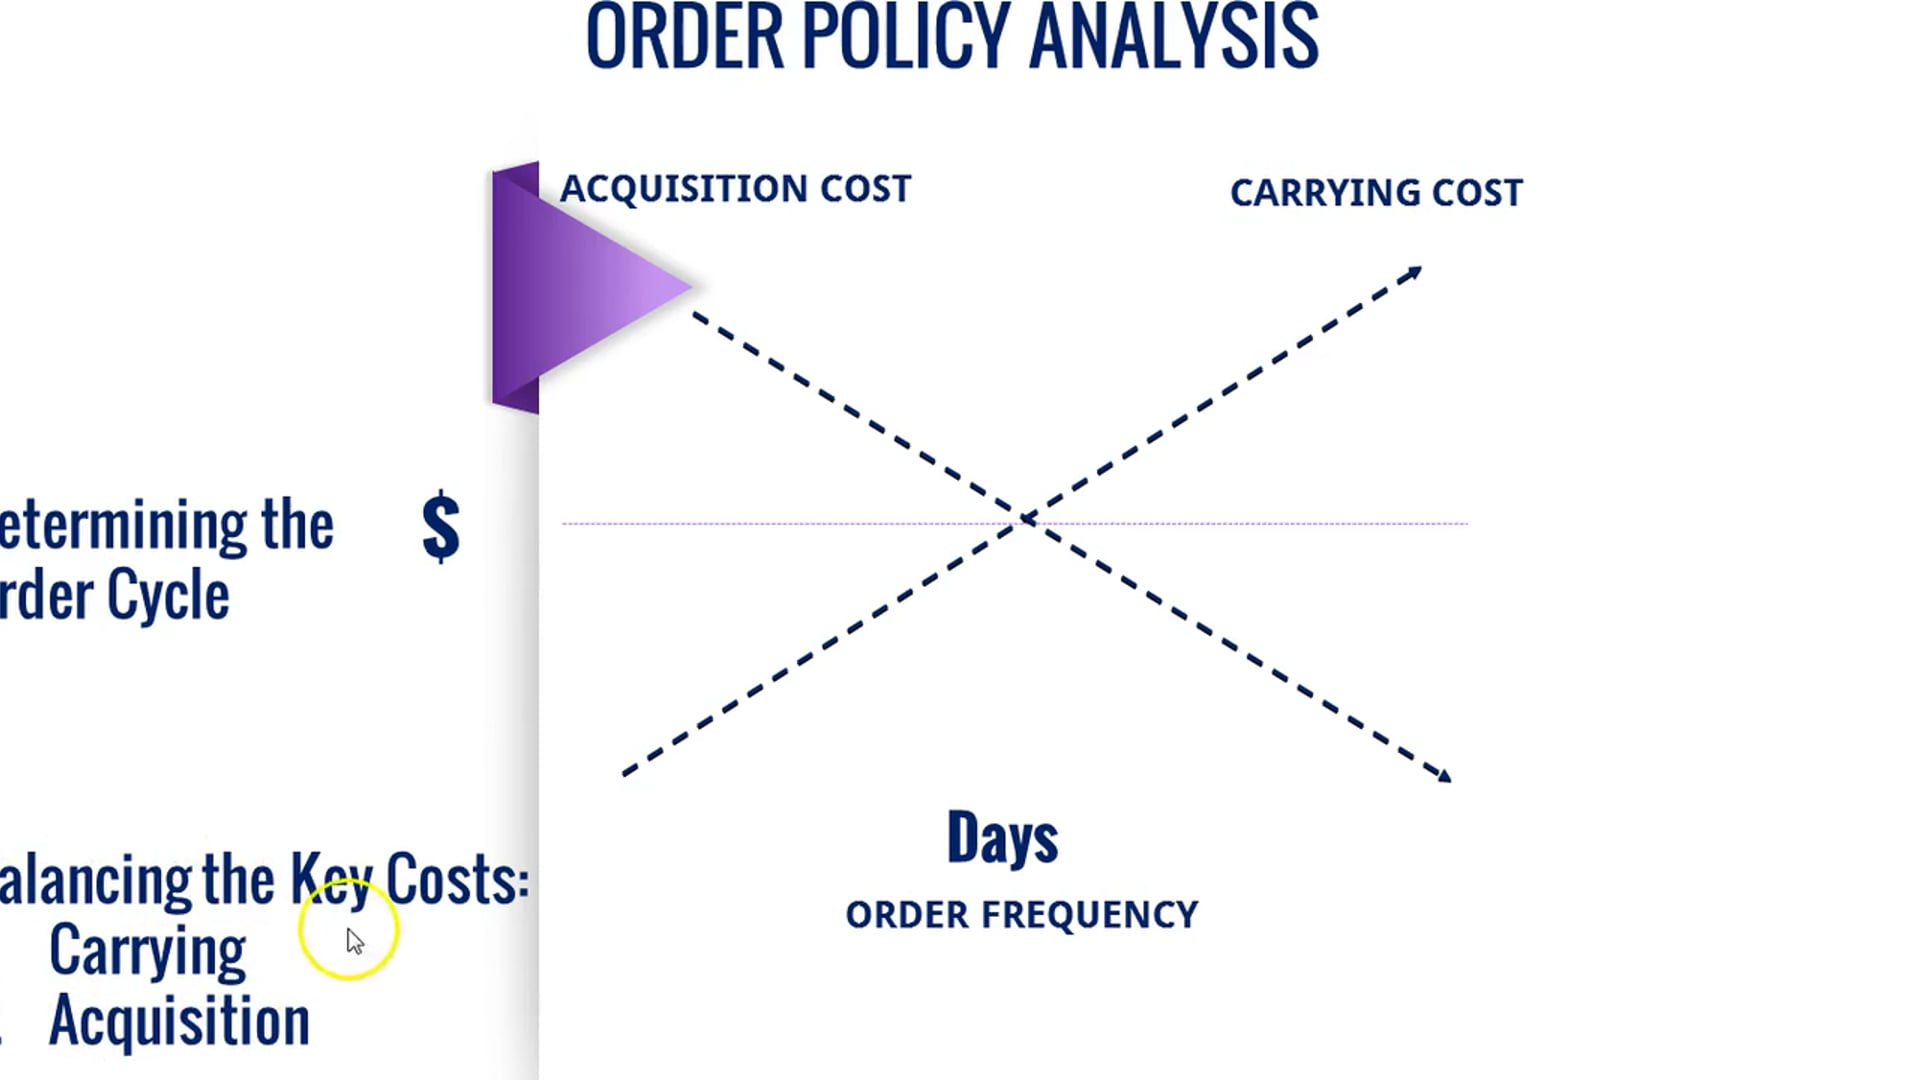 3 ORDER POLICY ANALYSIS